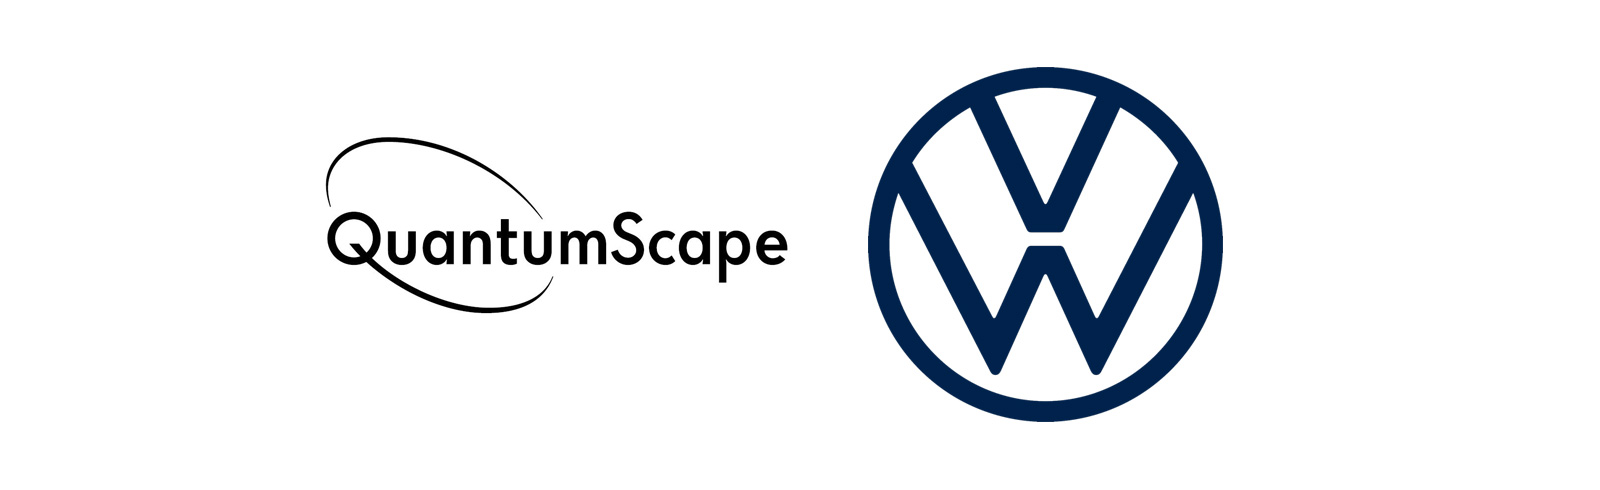 Volkswagen increases its stake in QuantumScape for its solid-state battery technology